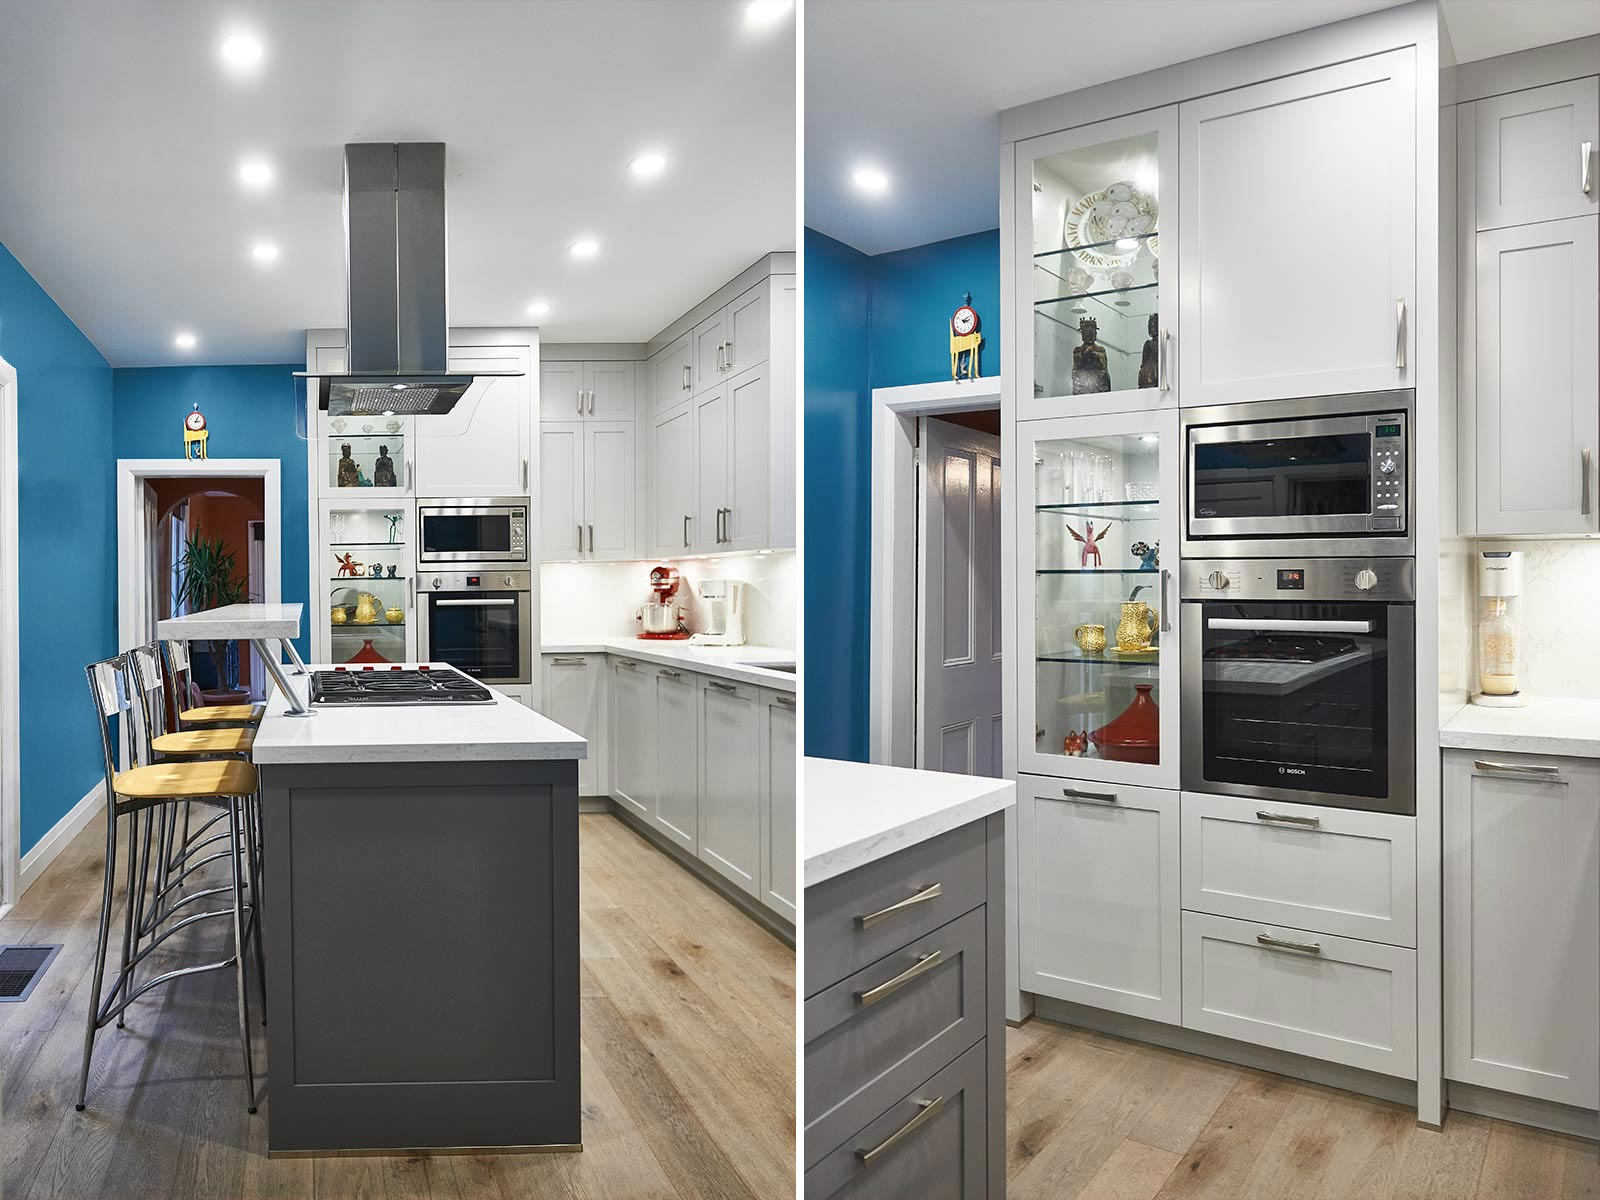 Kitchen in Shaker style with blue walls in Victorian house. Toronto, Canada